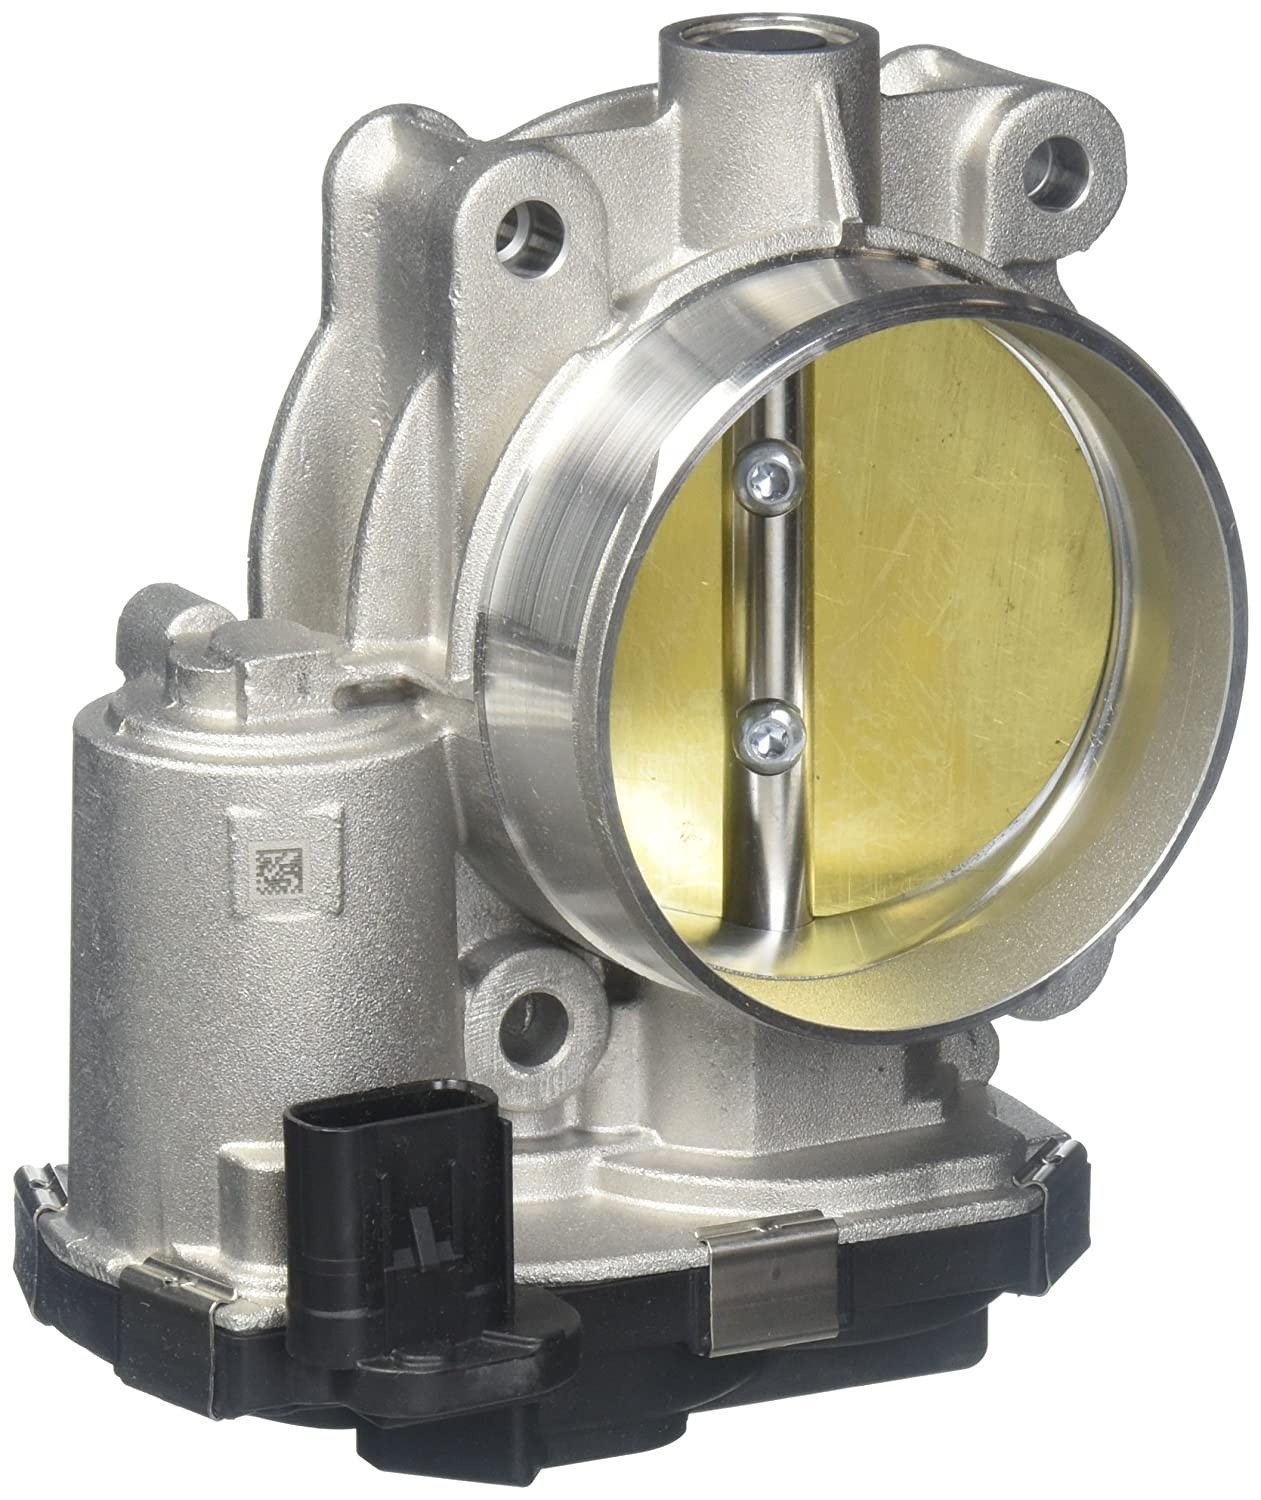 Acdelco 12670981 Gm Original Equipment Fuel Injection 2012 Chevy Traverse Fuse Box Removal Throttle Body Assembly With Sensor Automotive